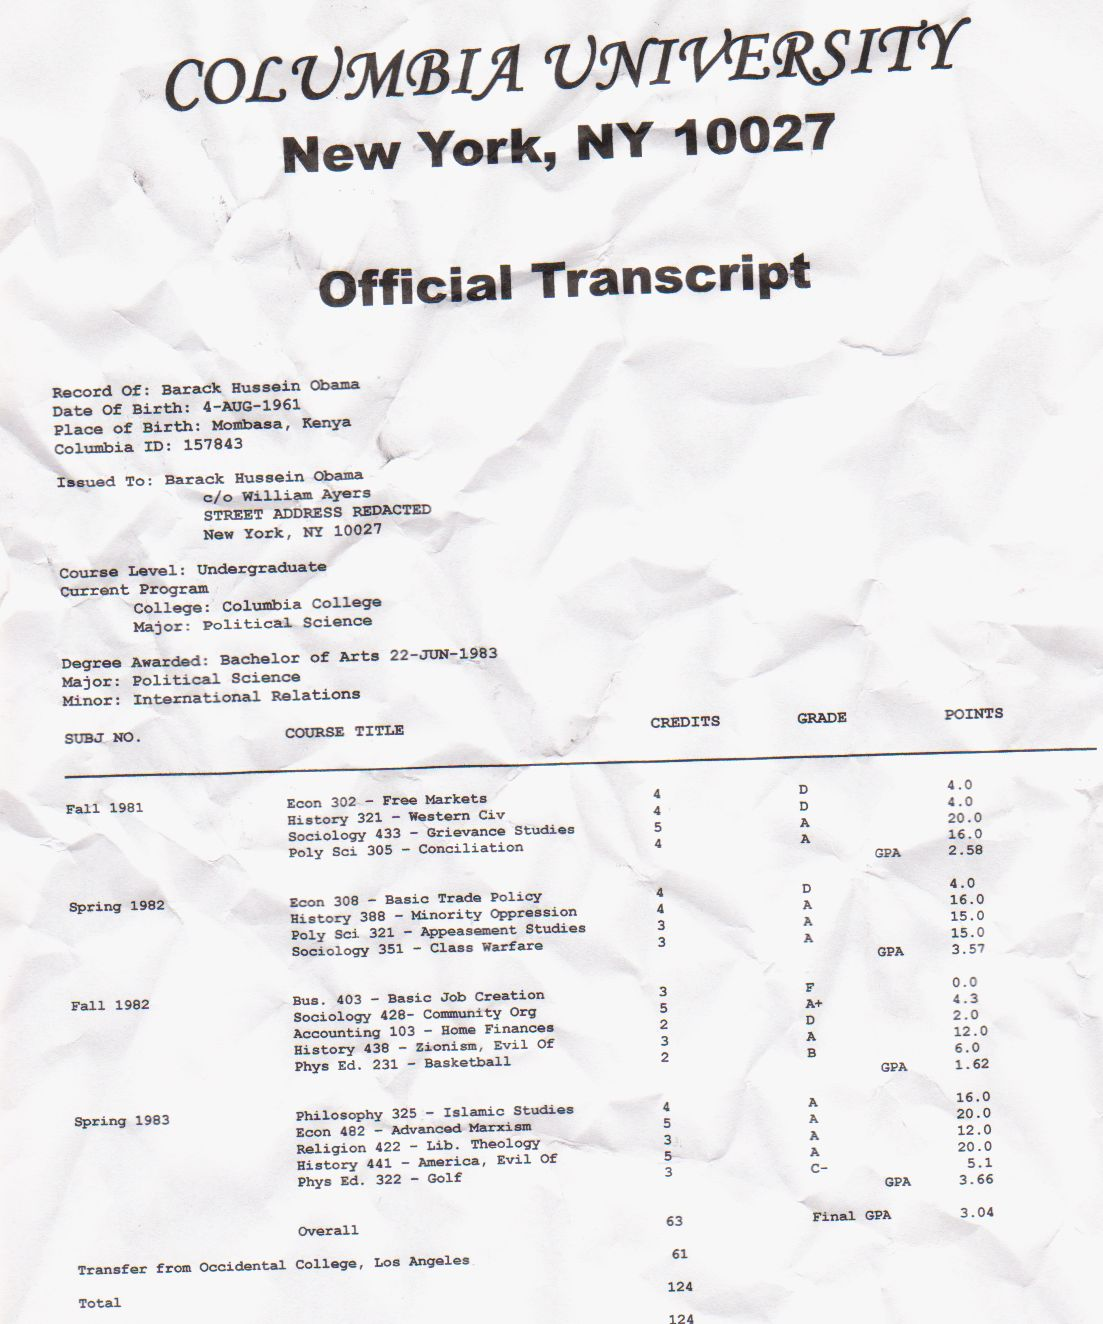 Application Form Buffalo City Tvet College Obama's College Transcript Finally Revealed